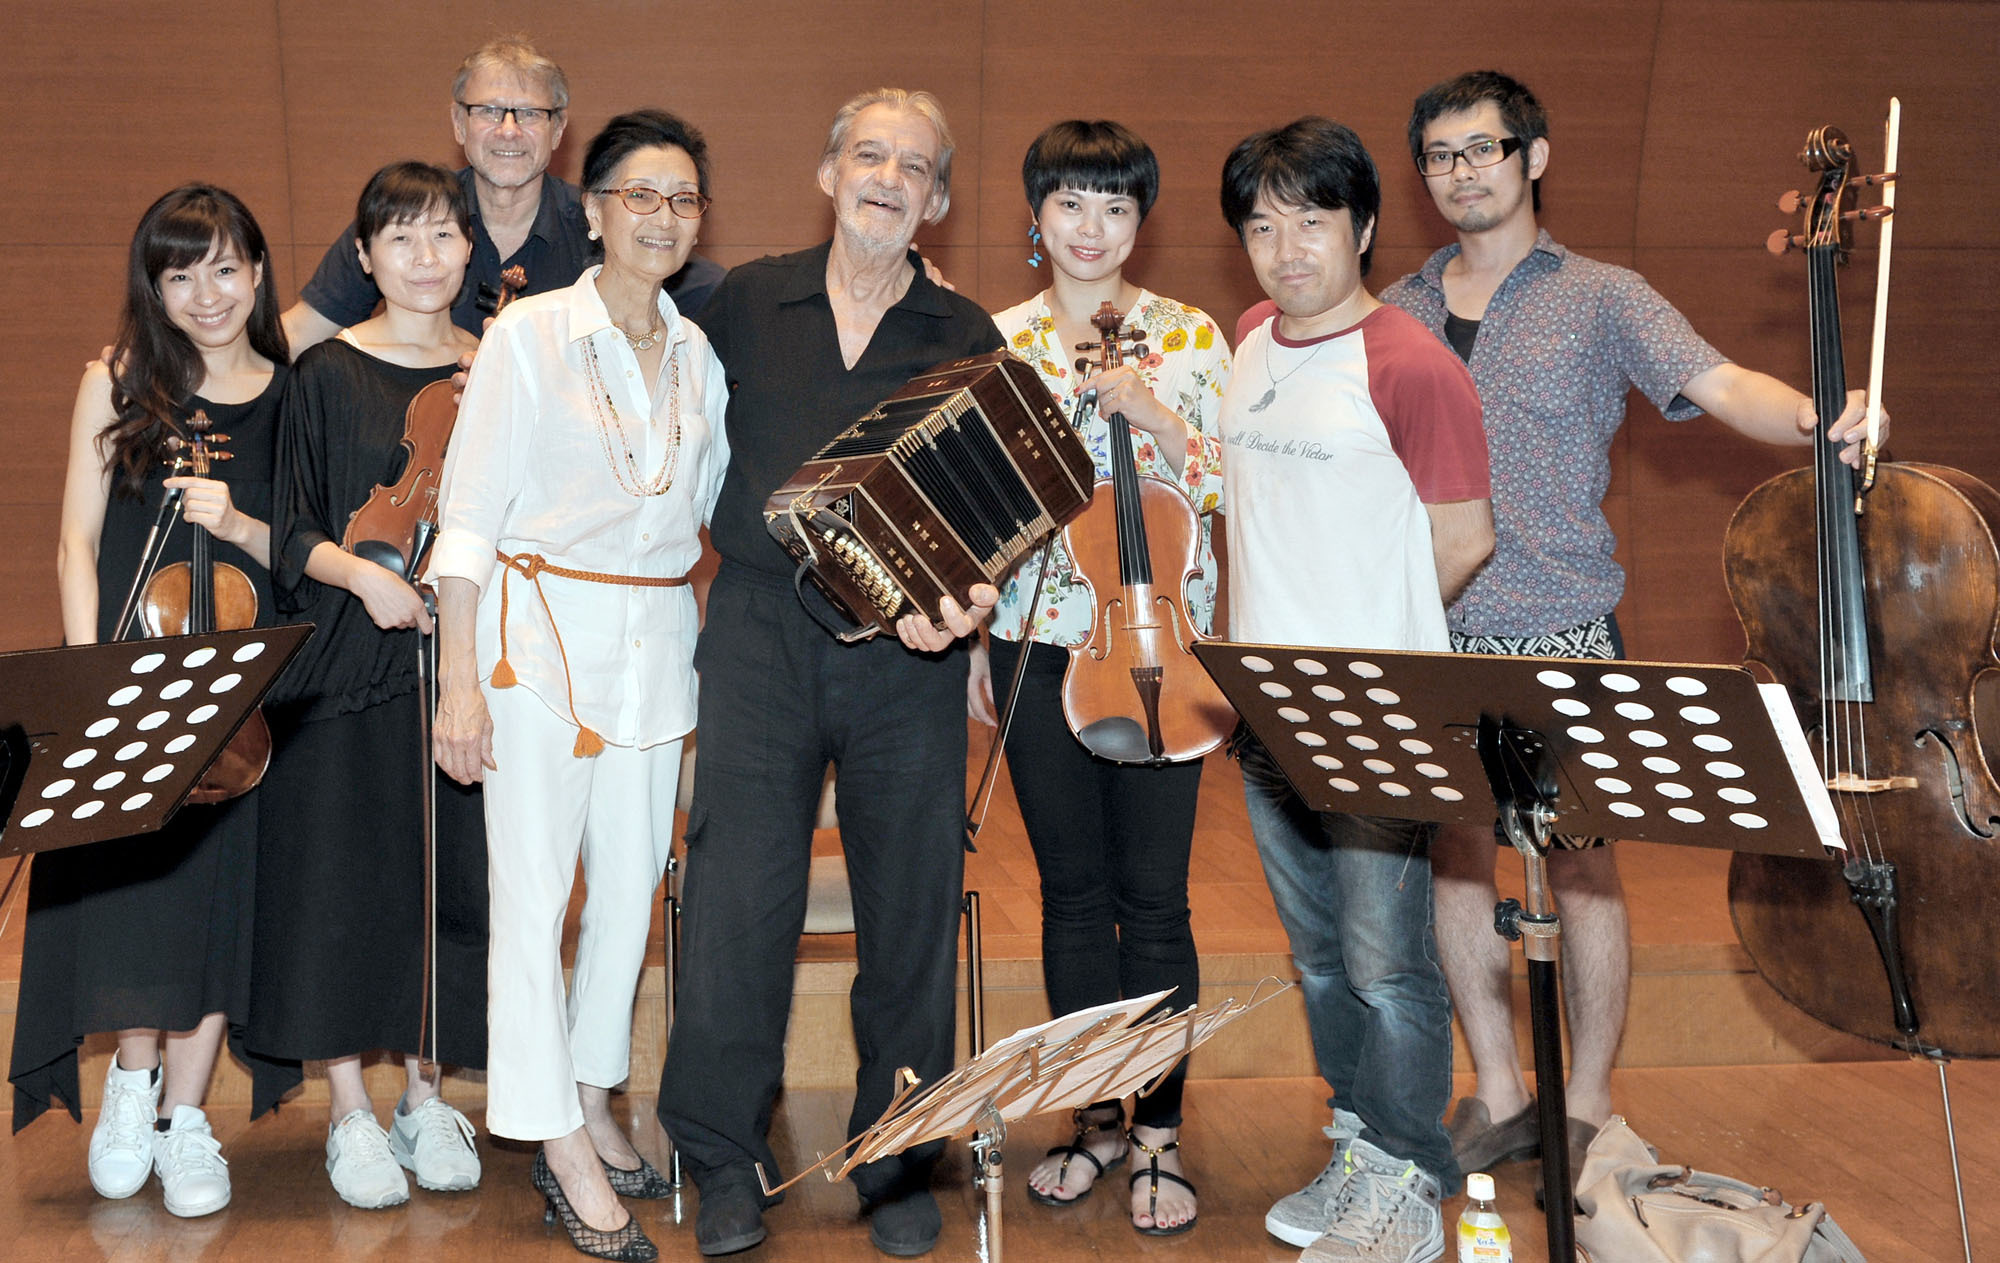 Argentine bandoneonist Rodolfo Mederos (fourth from right) and Argentine Society of Music Authors and Composers Japan representative Hiroko Matoba (fifth from right) pose with Japanese musicians (from left) Tsukasa Kasuya; Momoko Aida; Izumi Kawamura; bandoneonist Ryota Komatsu; Takahiro Uchida; and Mederos' manager Gustavo Frojan (back row) following a rehearsal for a joint concert to celebrate the Bicentennial of the Independence Day of the Argentine Republic at Keyaki Hall at the Koga Masao Museum of Music in Tokyo on July 12. | YOSHIAKI MIURA